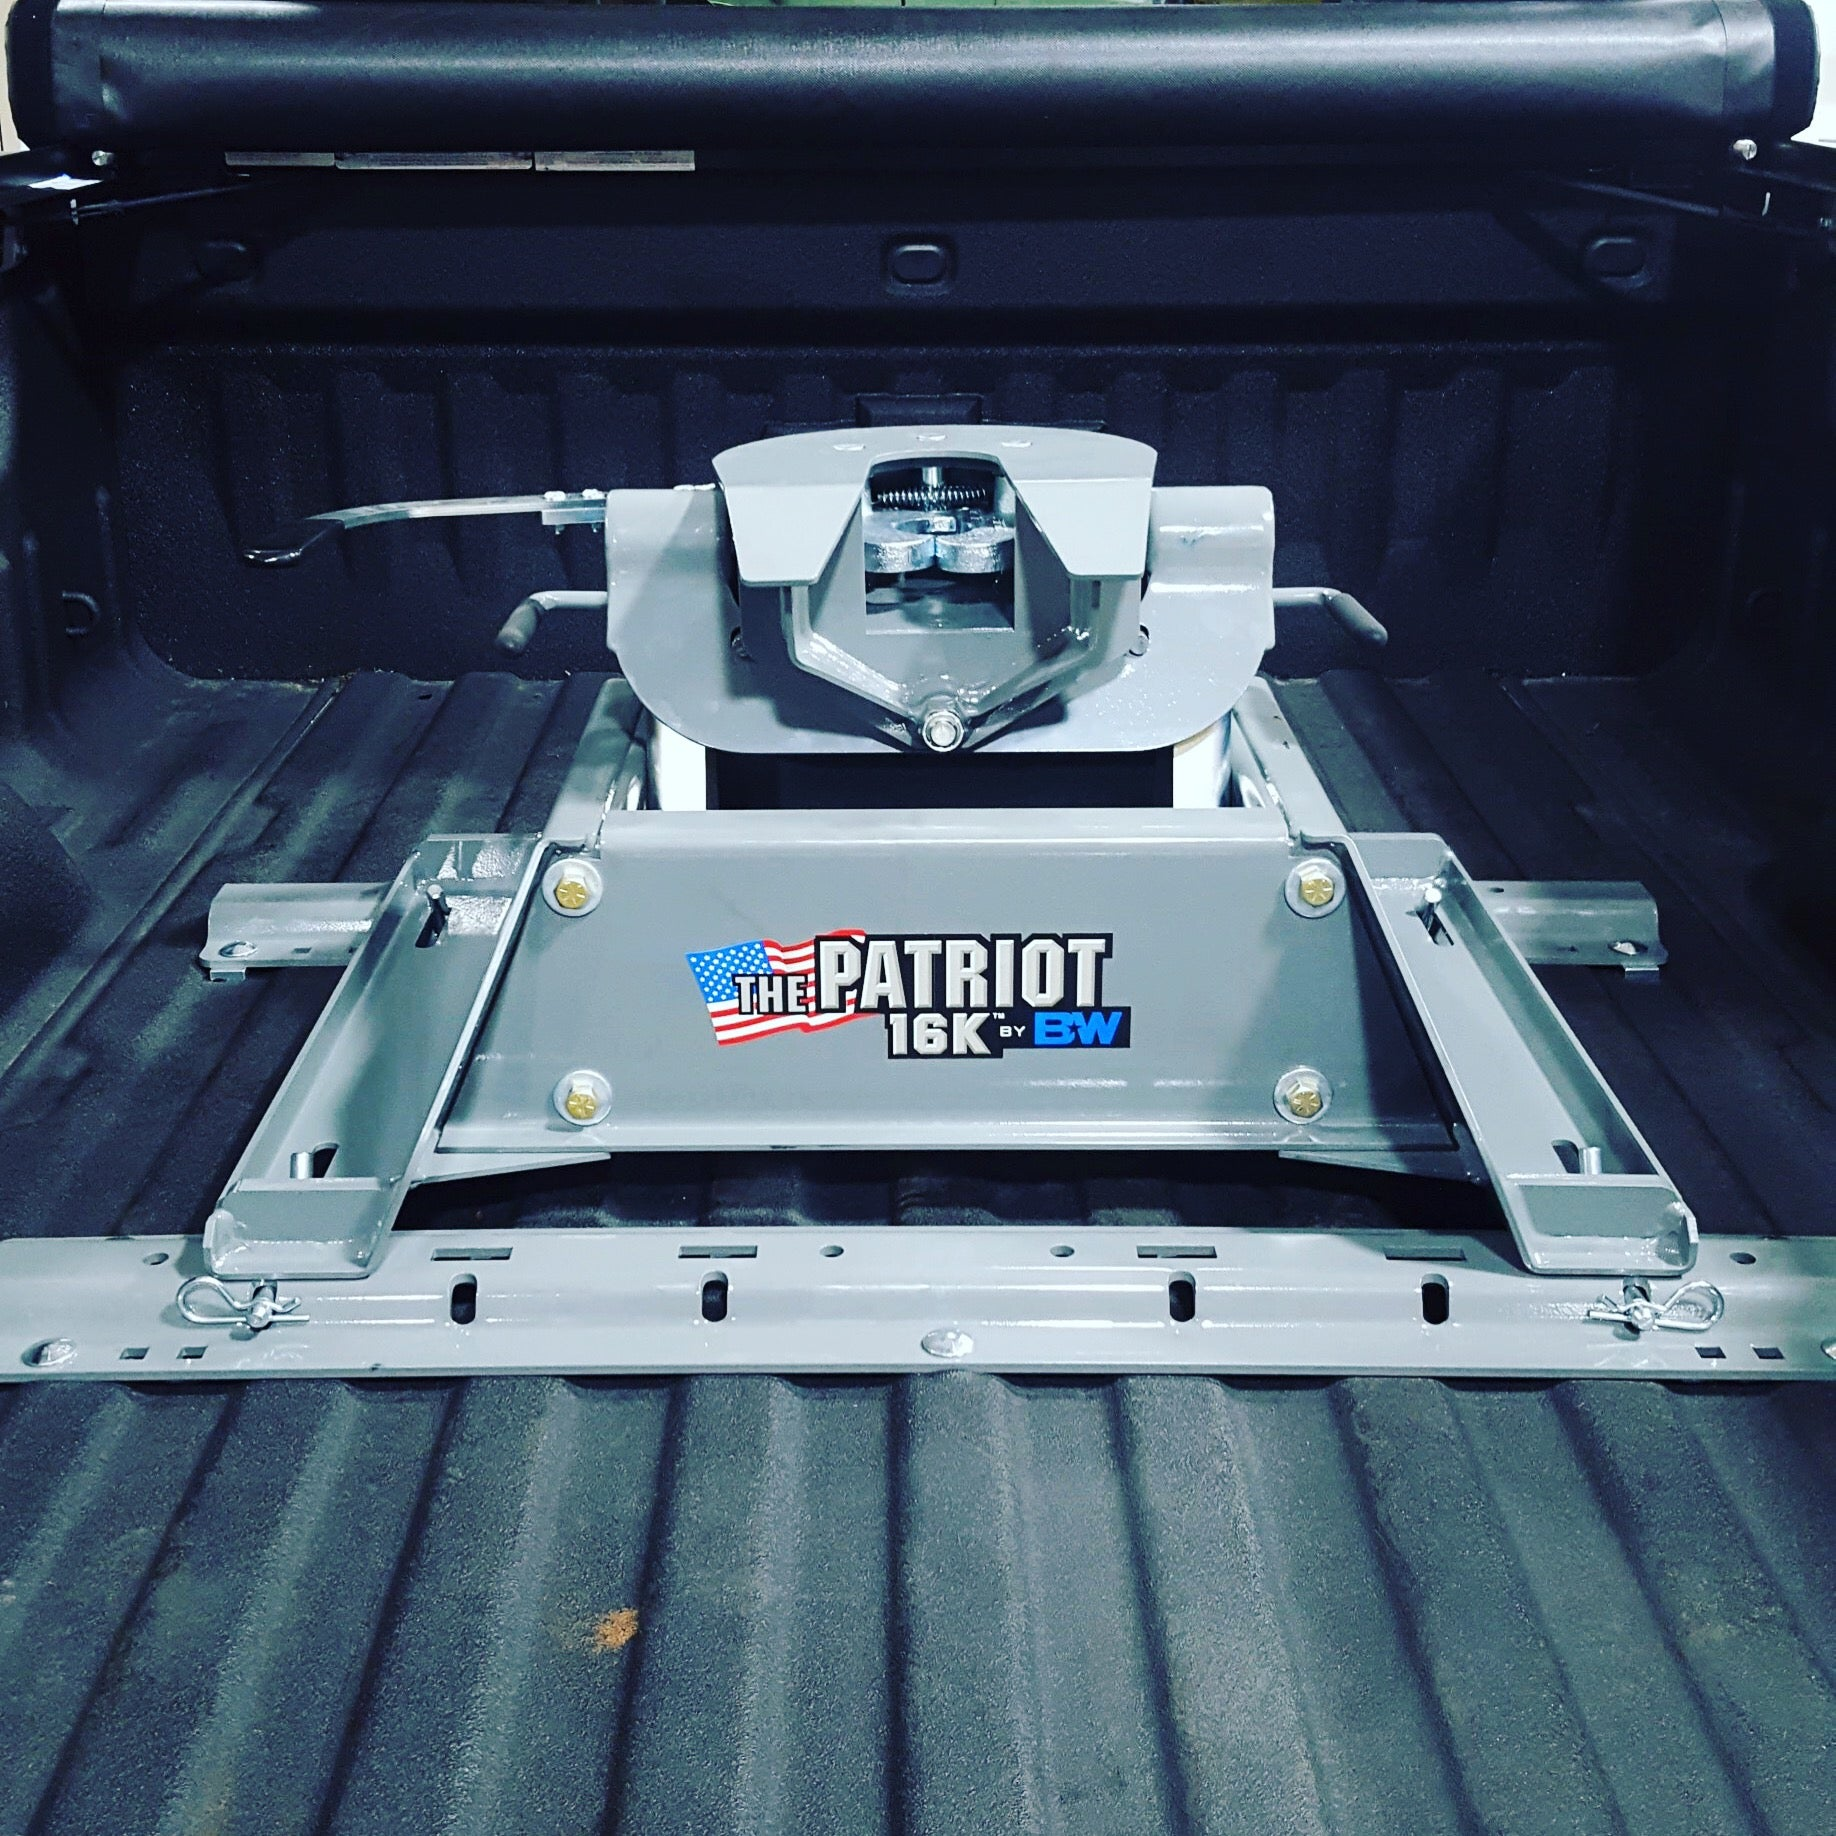 Trailer Hitch Installation Near Me